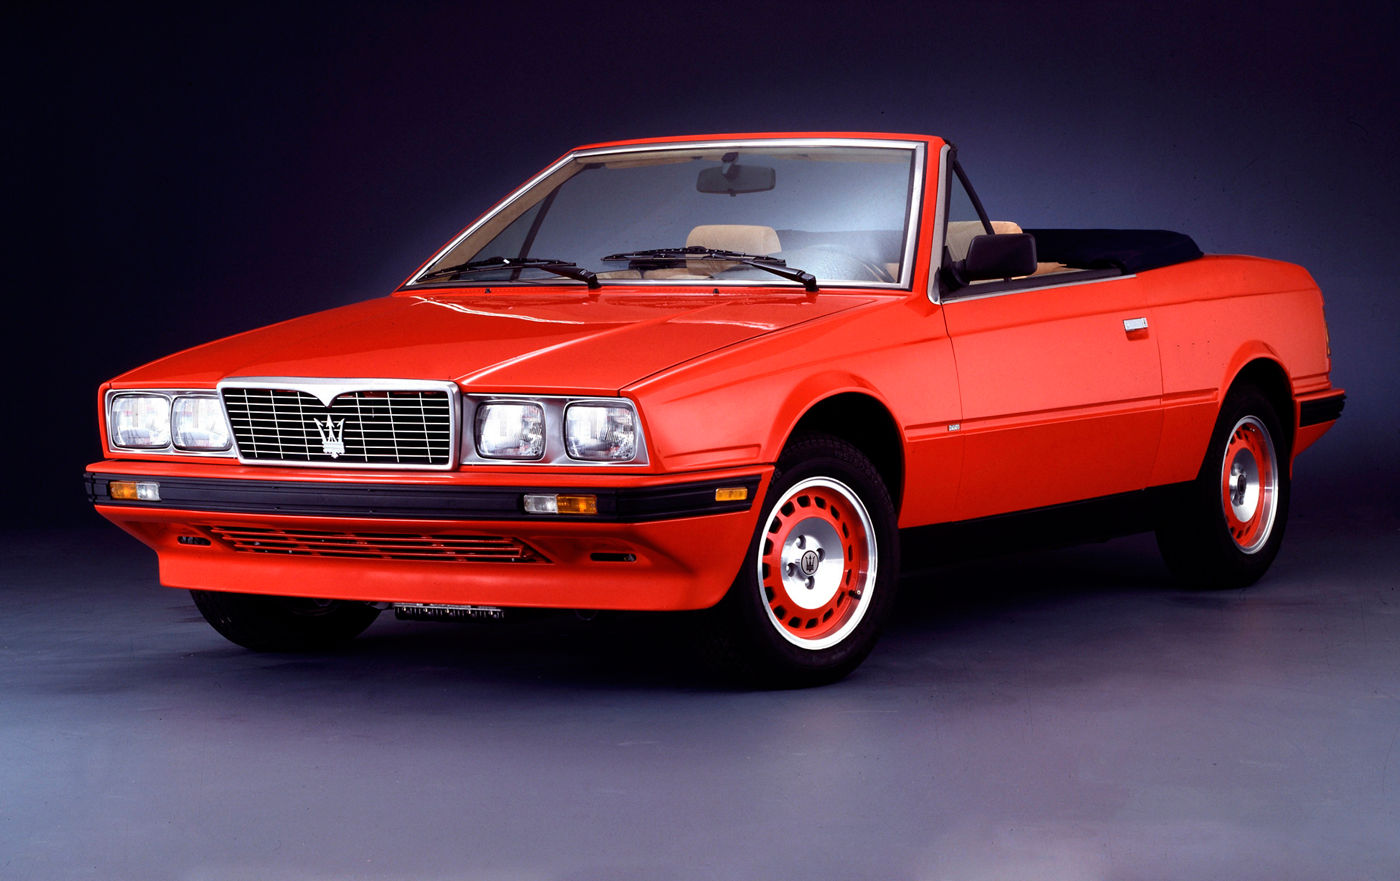 1989 Maserati Biturbo Spyder - exterior view of the classic convertible in red